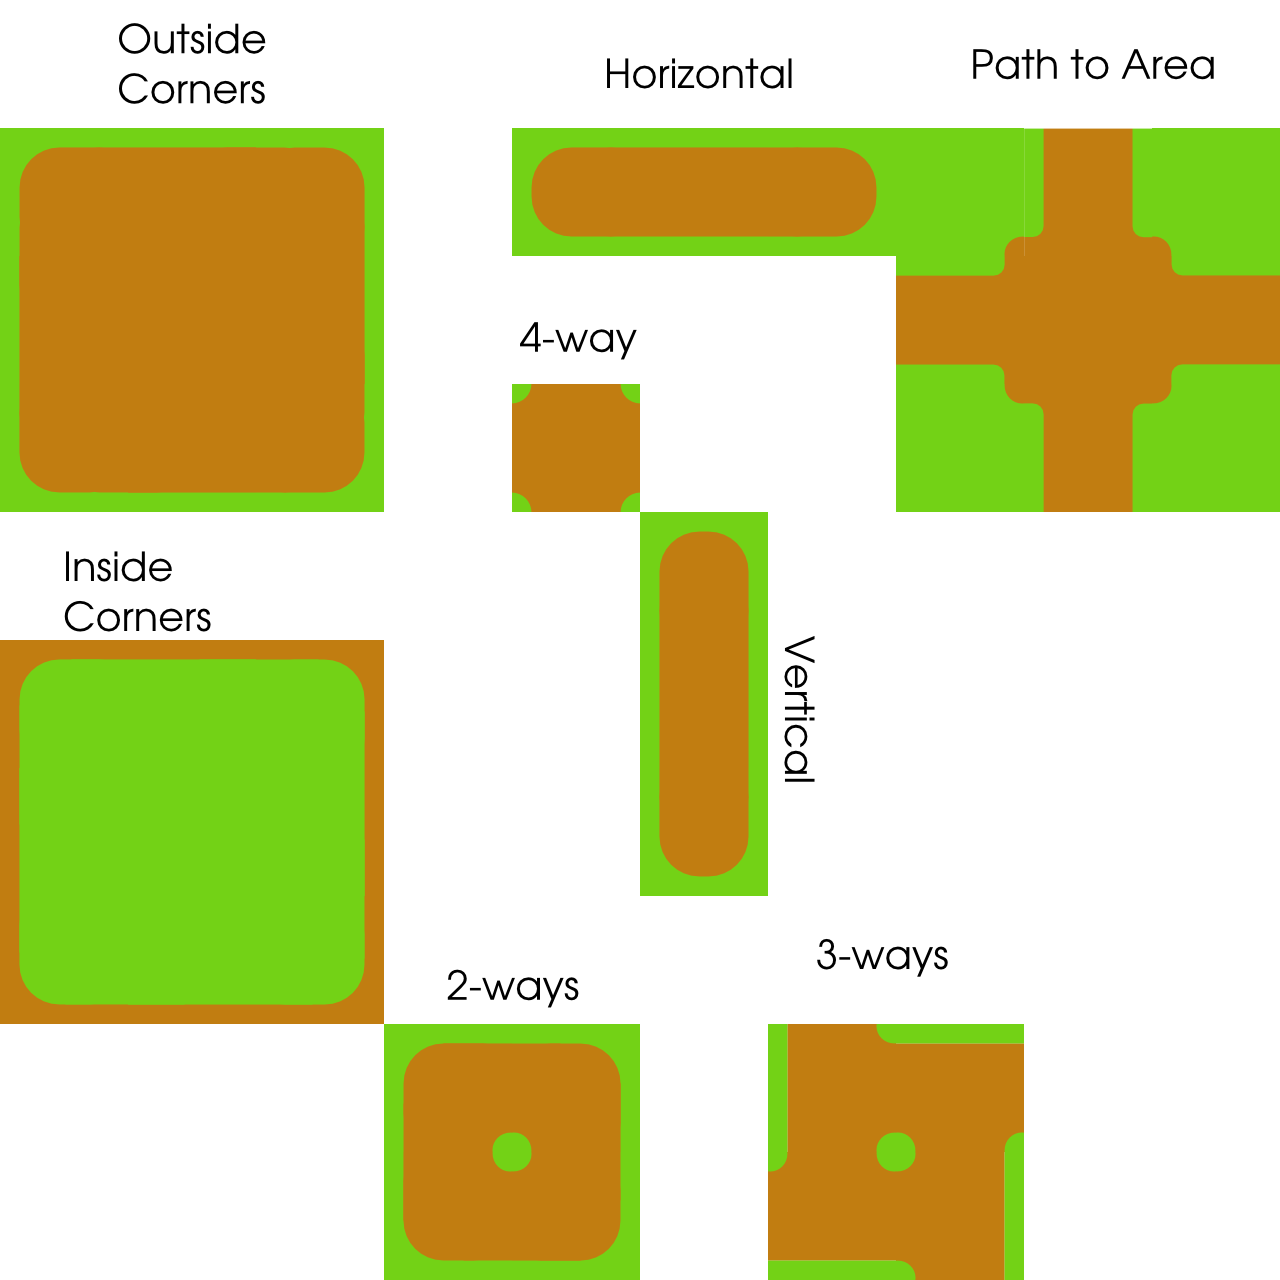 Rpg Path Tile Template Opengameart Org